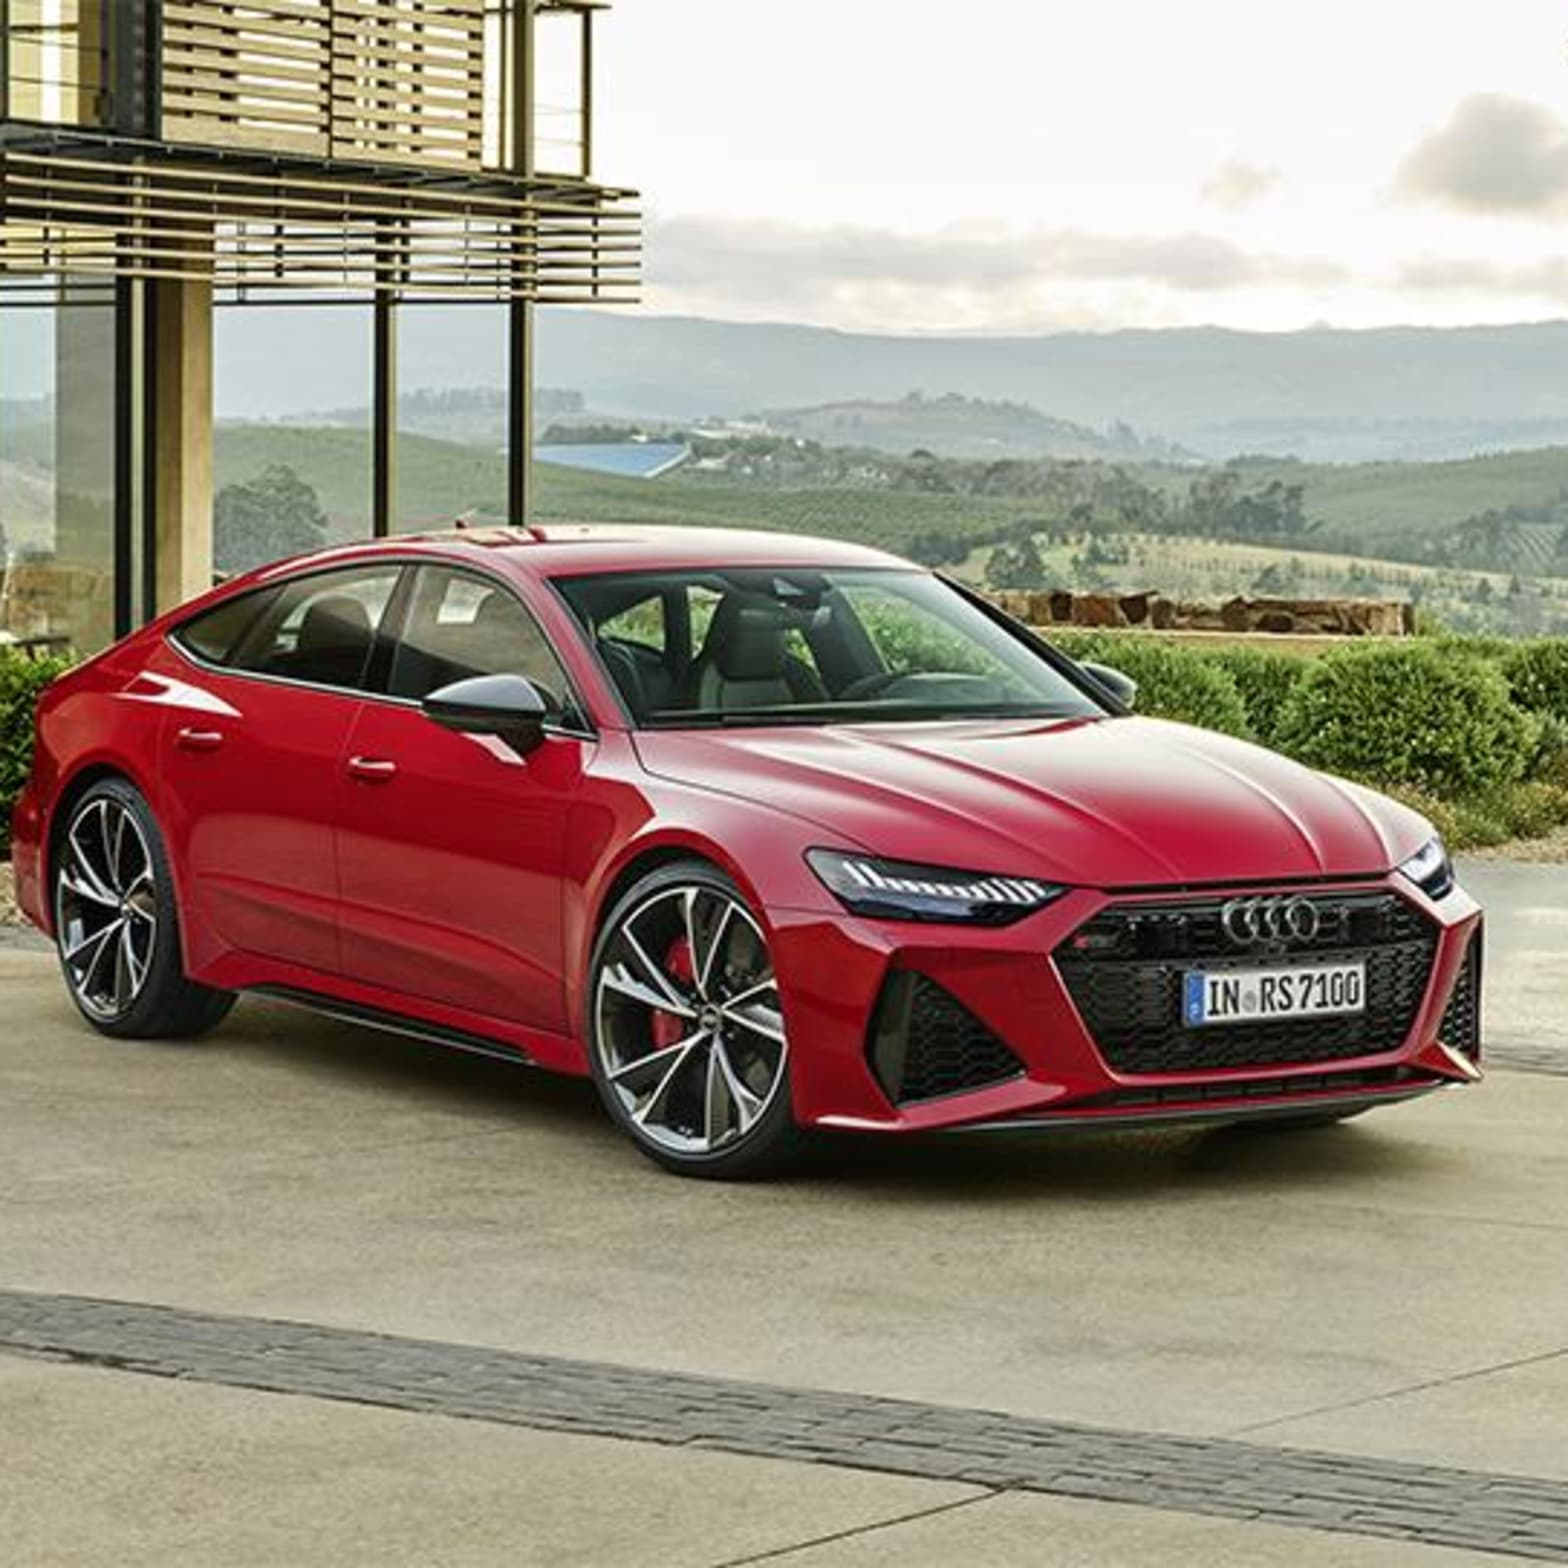 New Audi Rs7 Sportback For Sale Finance Available Swansway Audi